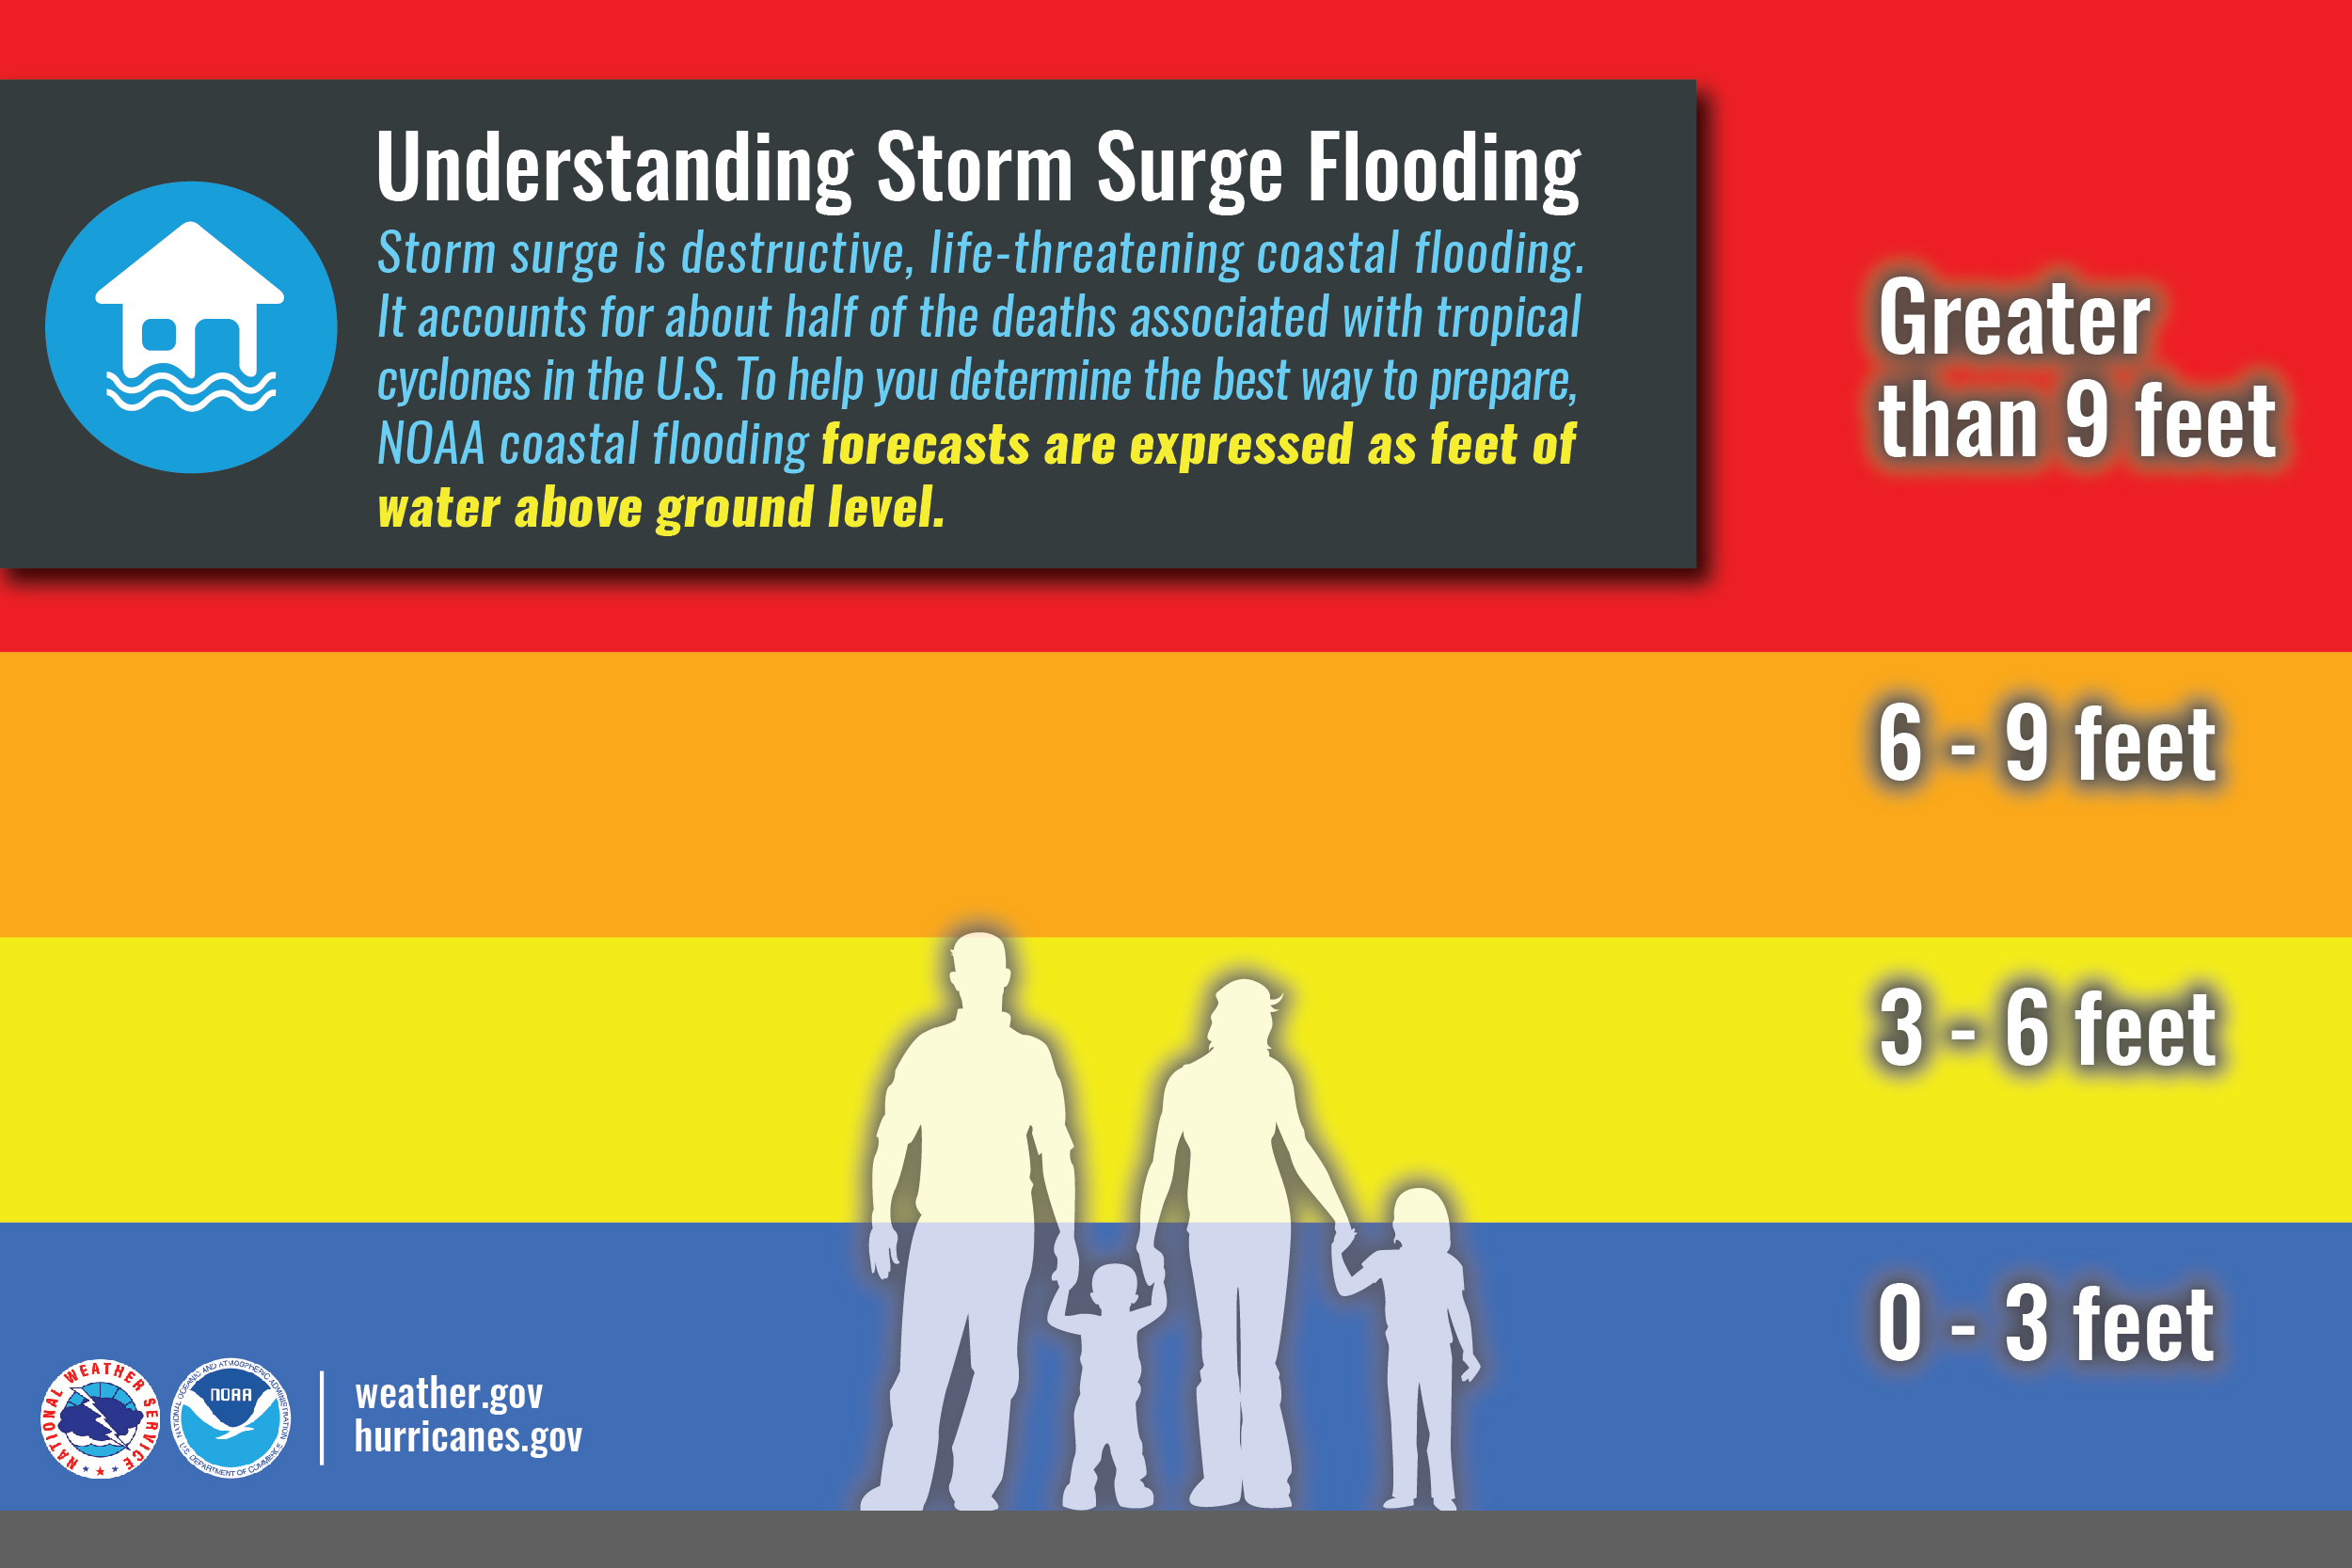 Understanding Storm Surge Flooding: Storm surge is destructive, life-threatening coastal flooding. It accounts for about half of the deaths associated with tropical cyclones in the U.S. To help you determine the best way to prepare, NOAA coastal flooding forecasts are expressed as feet of water above ground level.  RED=Greater than 9 feet. ORANGE=6-9 feet. YELLOW=3-6 feet. BLUE=0-3 feet.